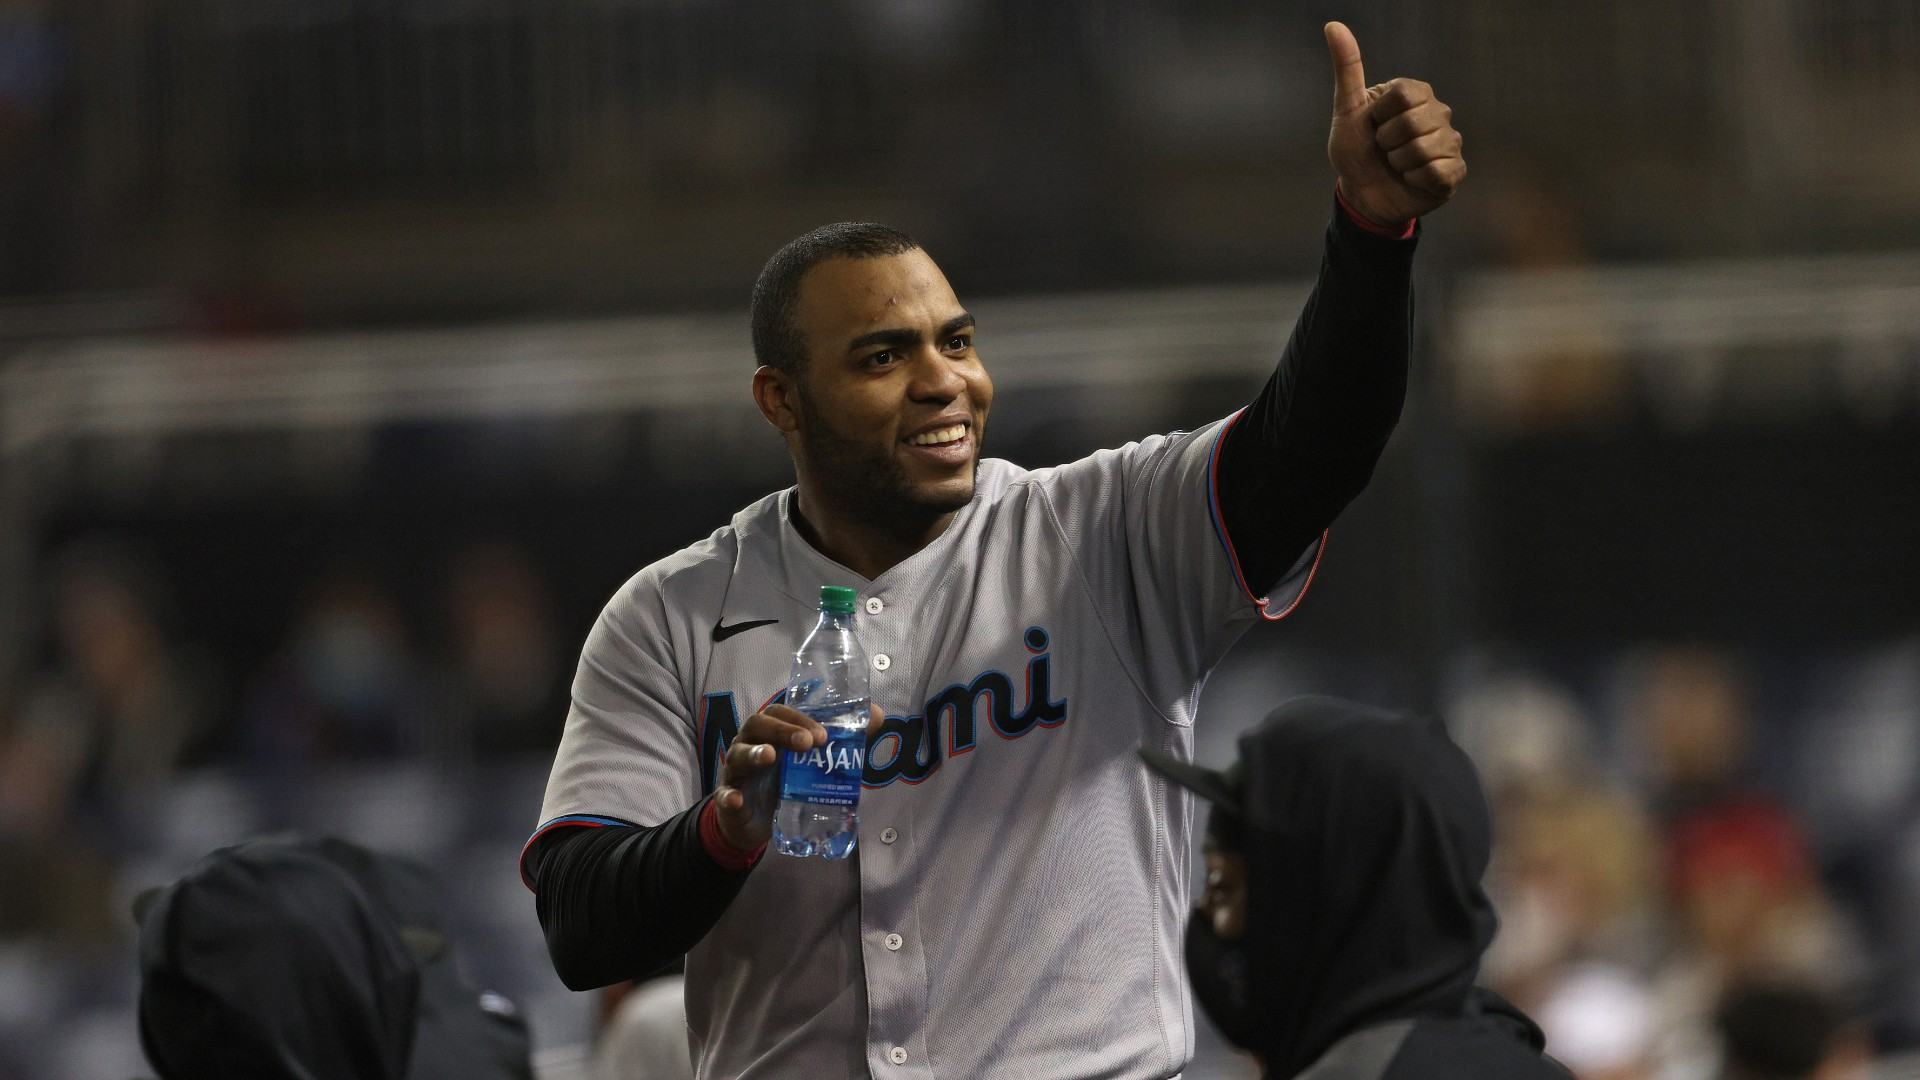 Marlins 'Jesus Aguilar literally tries to steal signs from D-backs' Carson Kelly